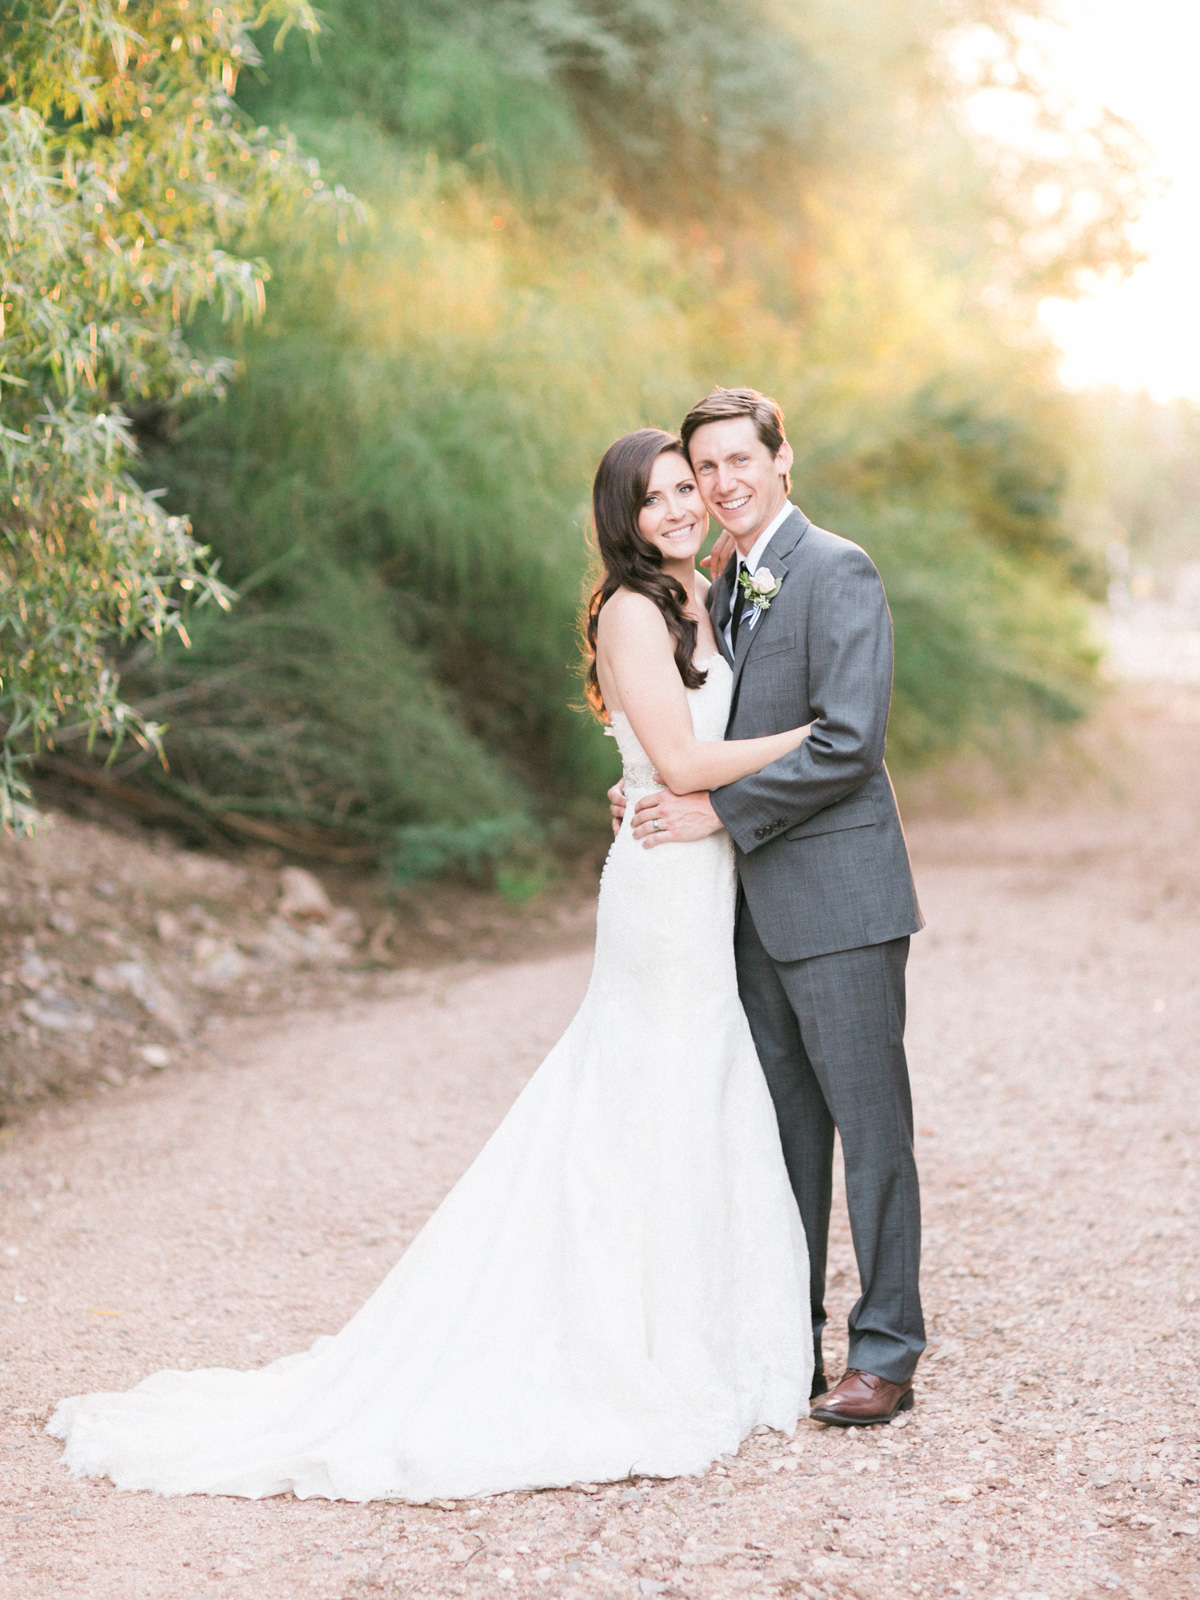 Gorgeous bride and groom smiling with gorgeous golden light captured by Phoenix wedding photographers, Betsy & John